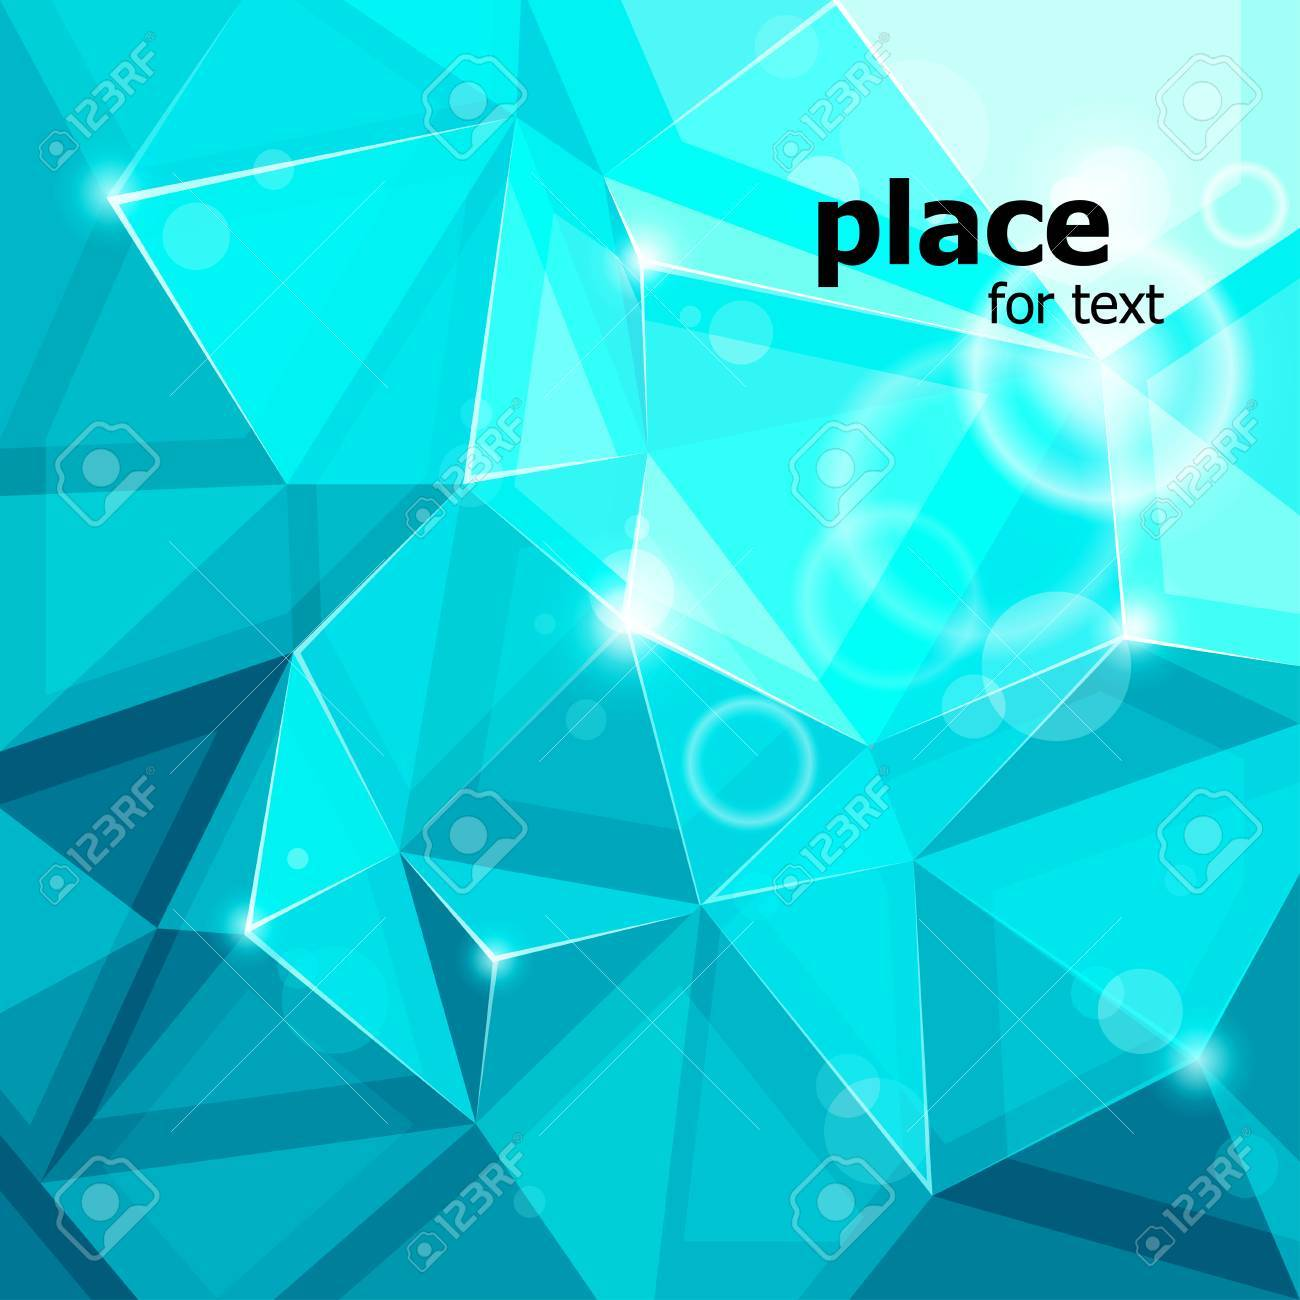 blue rumpled abstract background.  illustration Stock Vector - 7694021